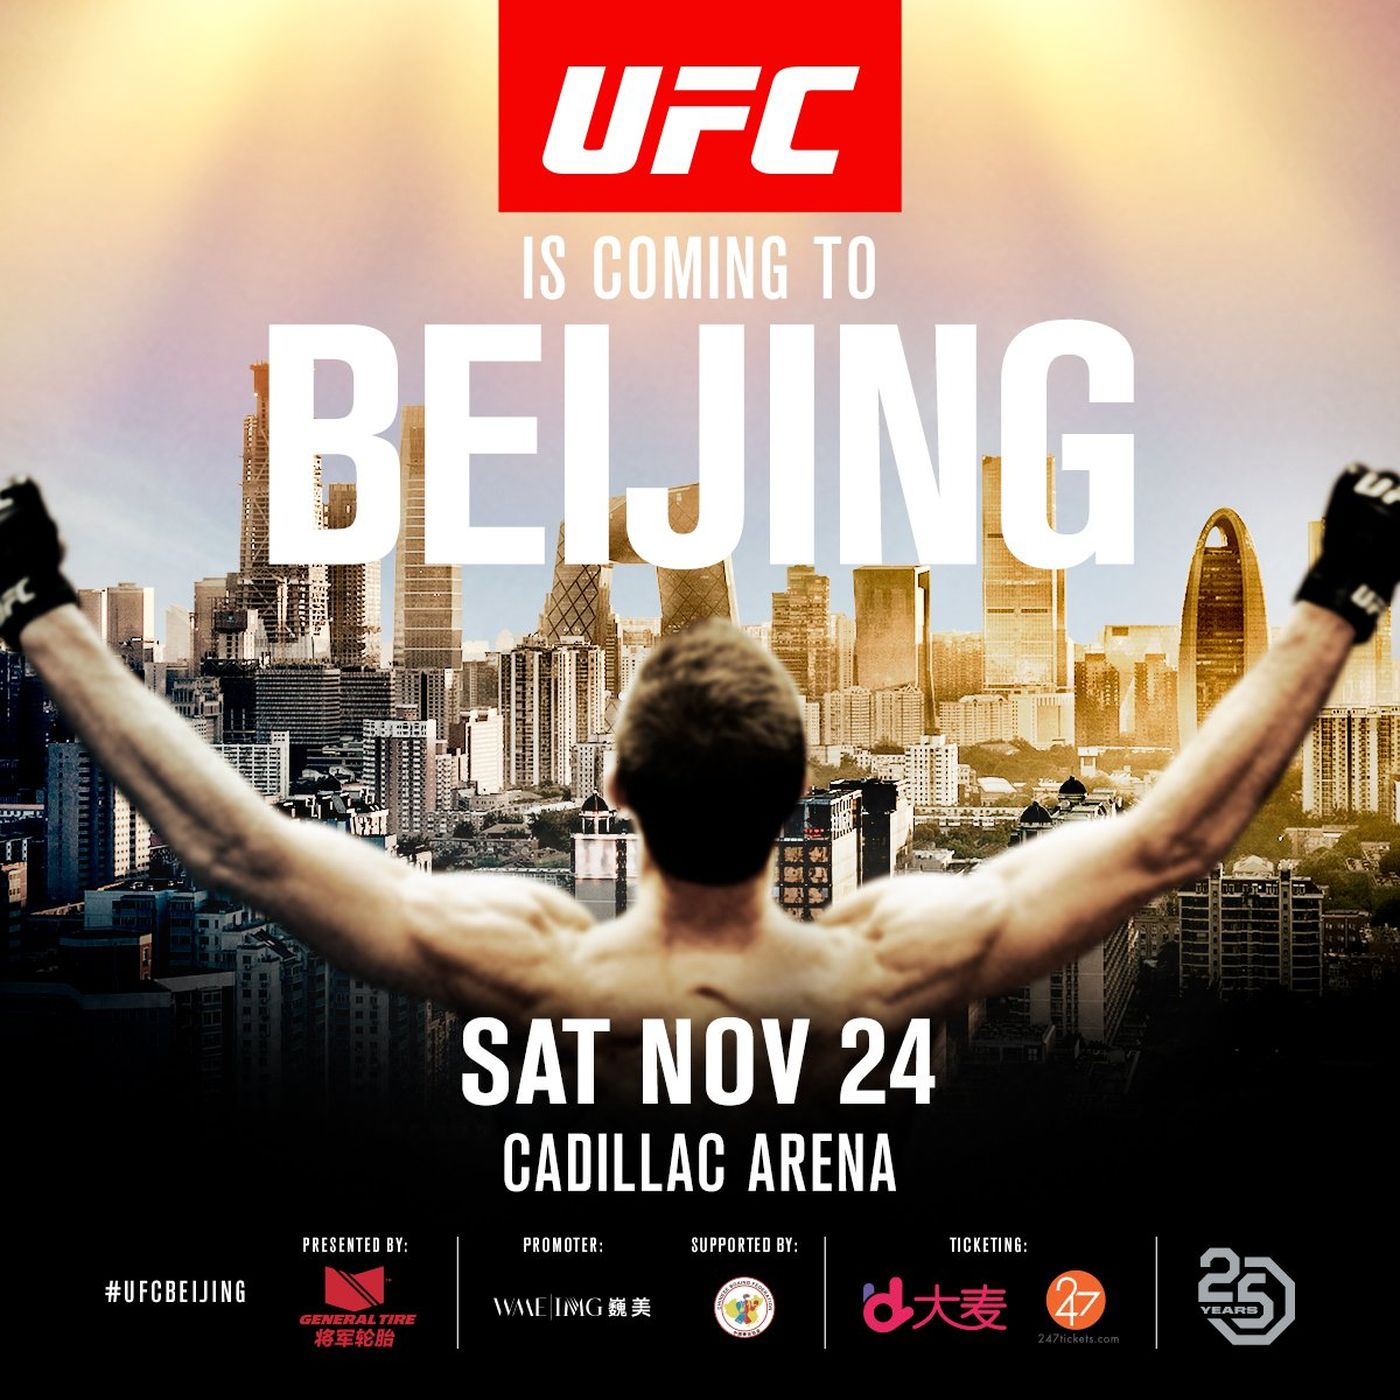 UFC confirms first ever visit to Beijing in November